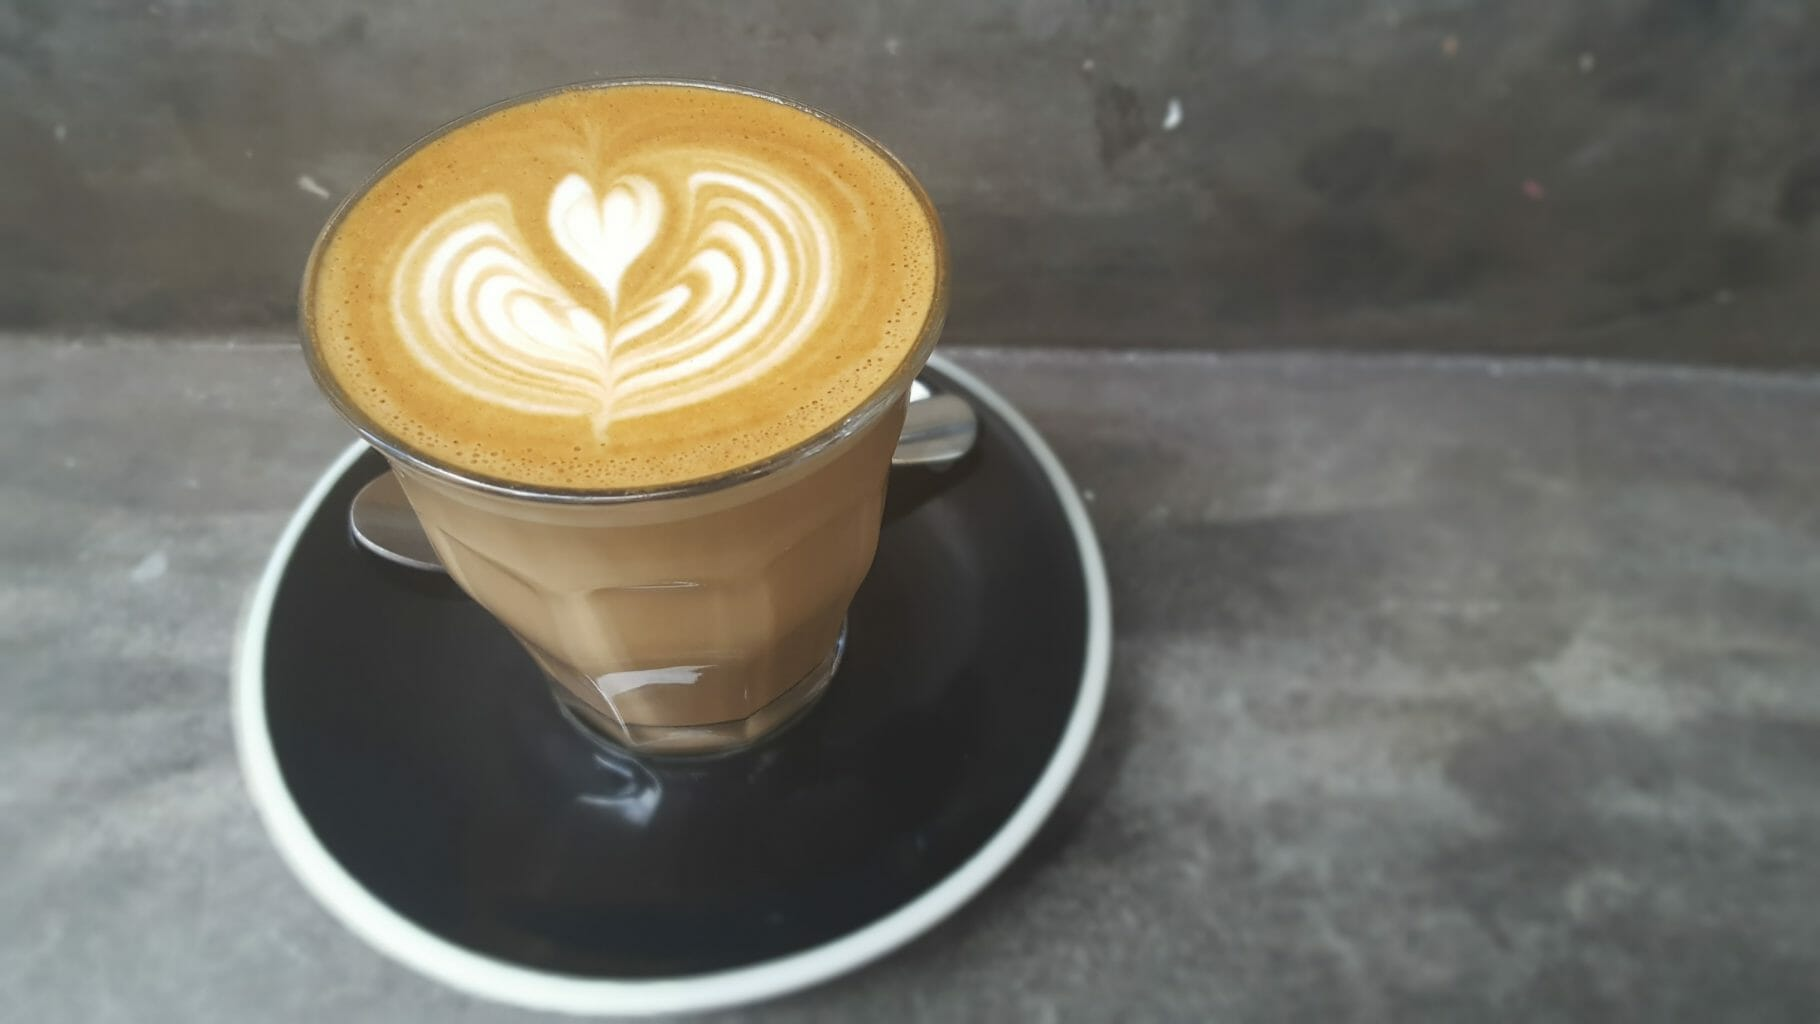 Latte from Peel Street Espresso